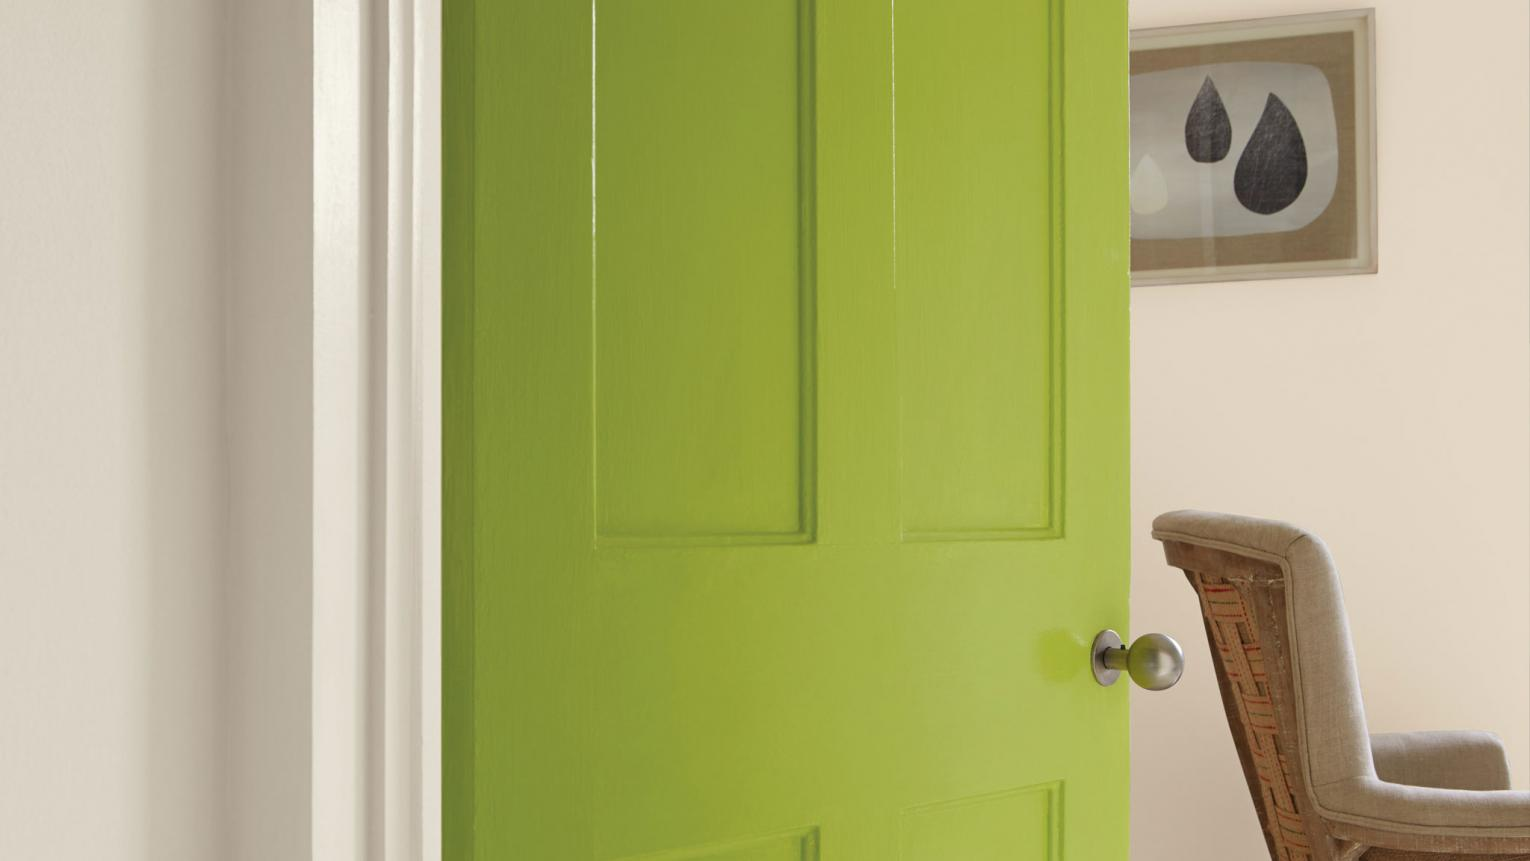 Getting ready to paint your interior doors? Follow this step-by-step guide to achieving a perfect finish.